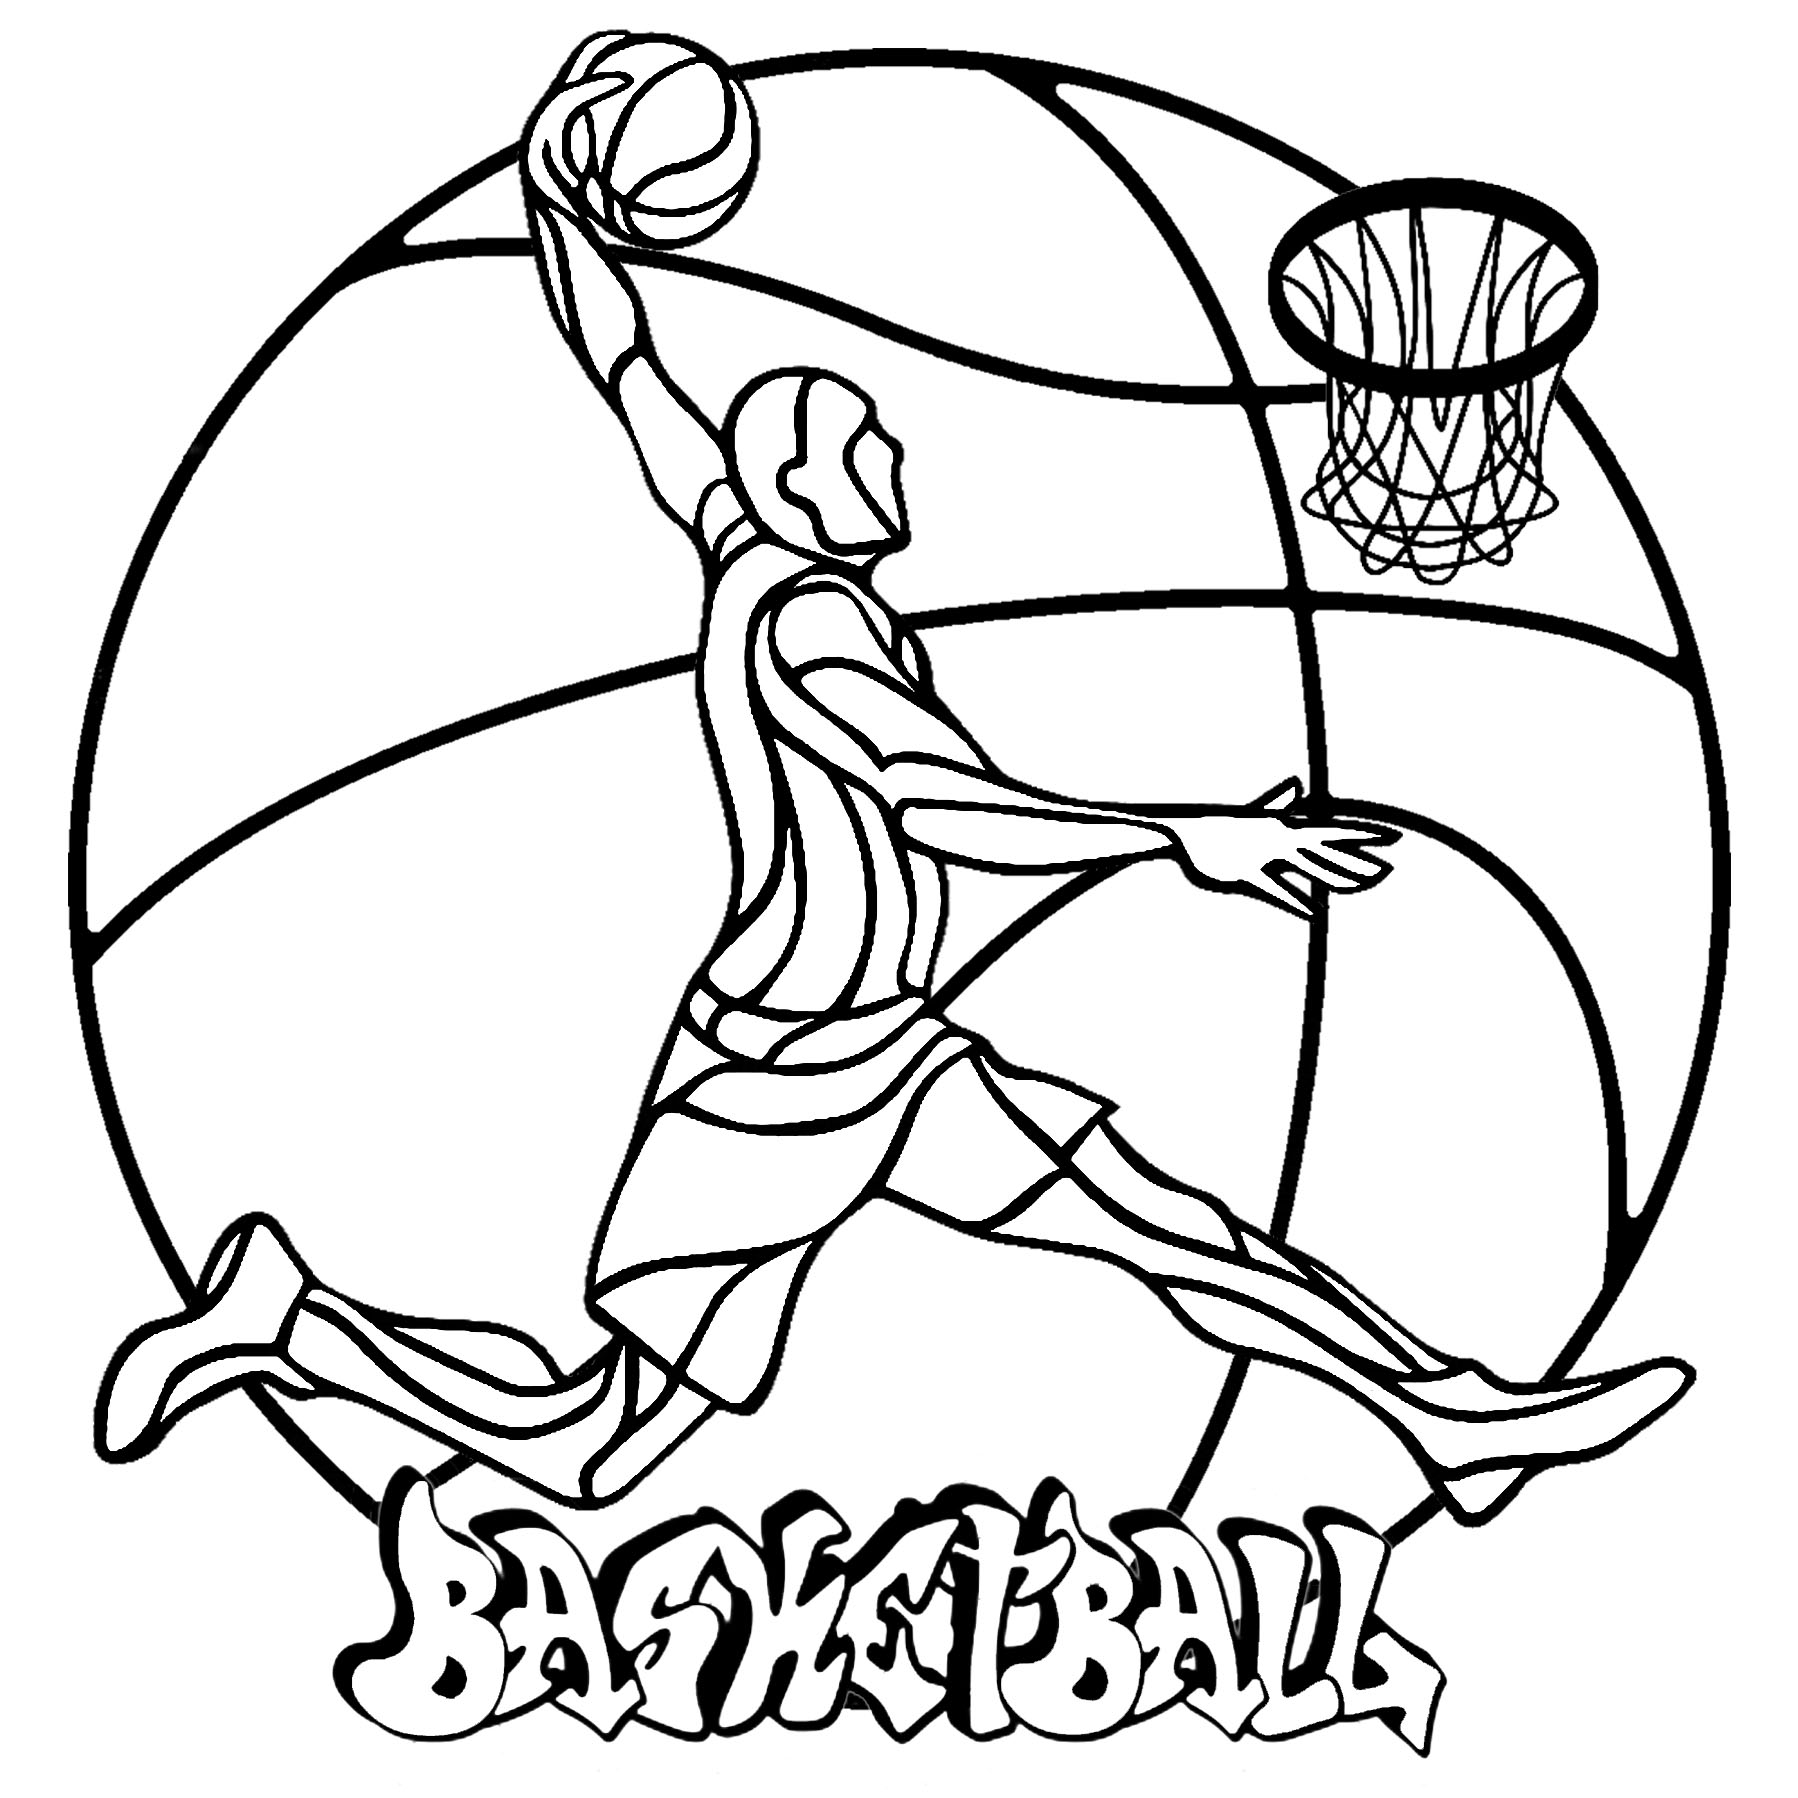 coloring pages of basketball basketball coloring pages free download on clipartmag coloring of basketball pages